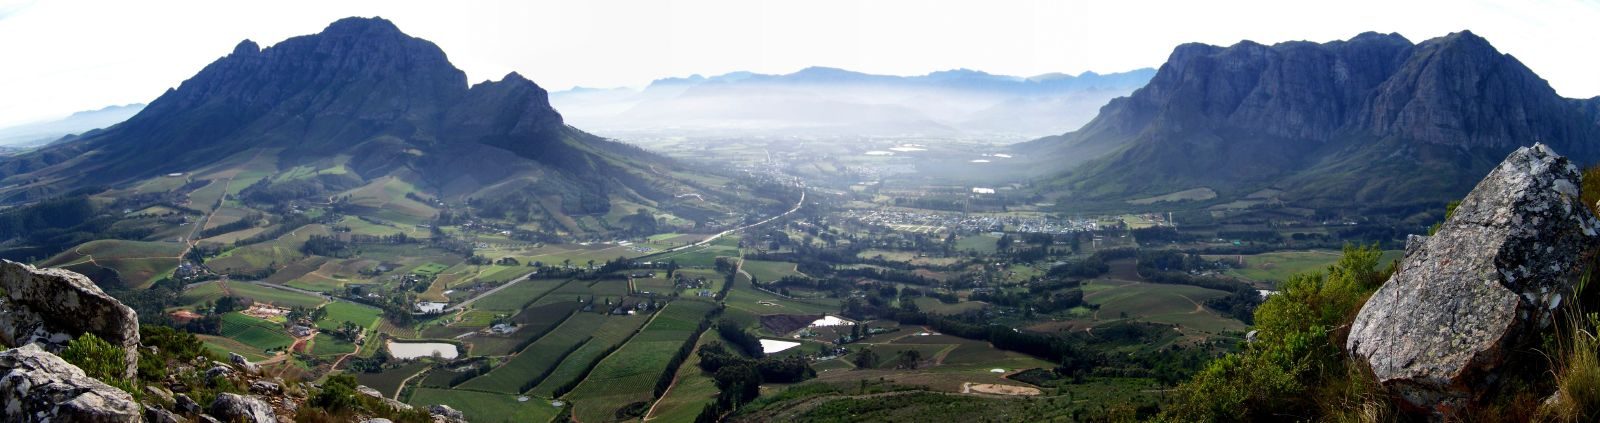 Simonsberg (left) and Groot-Drakenstein (right) with the promenent Dragoon Ridge